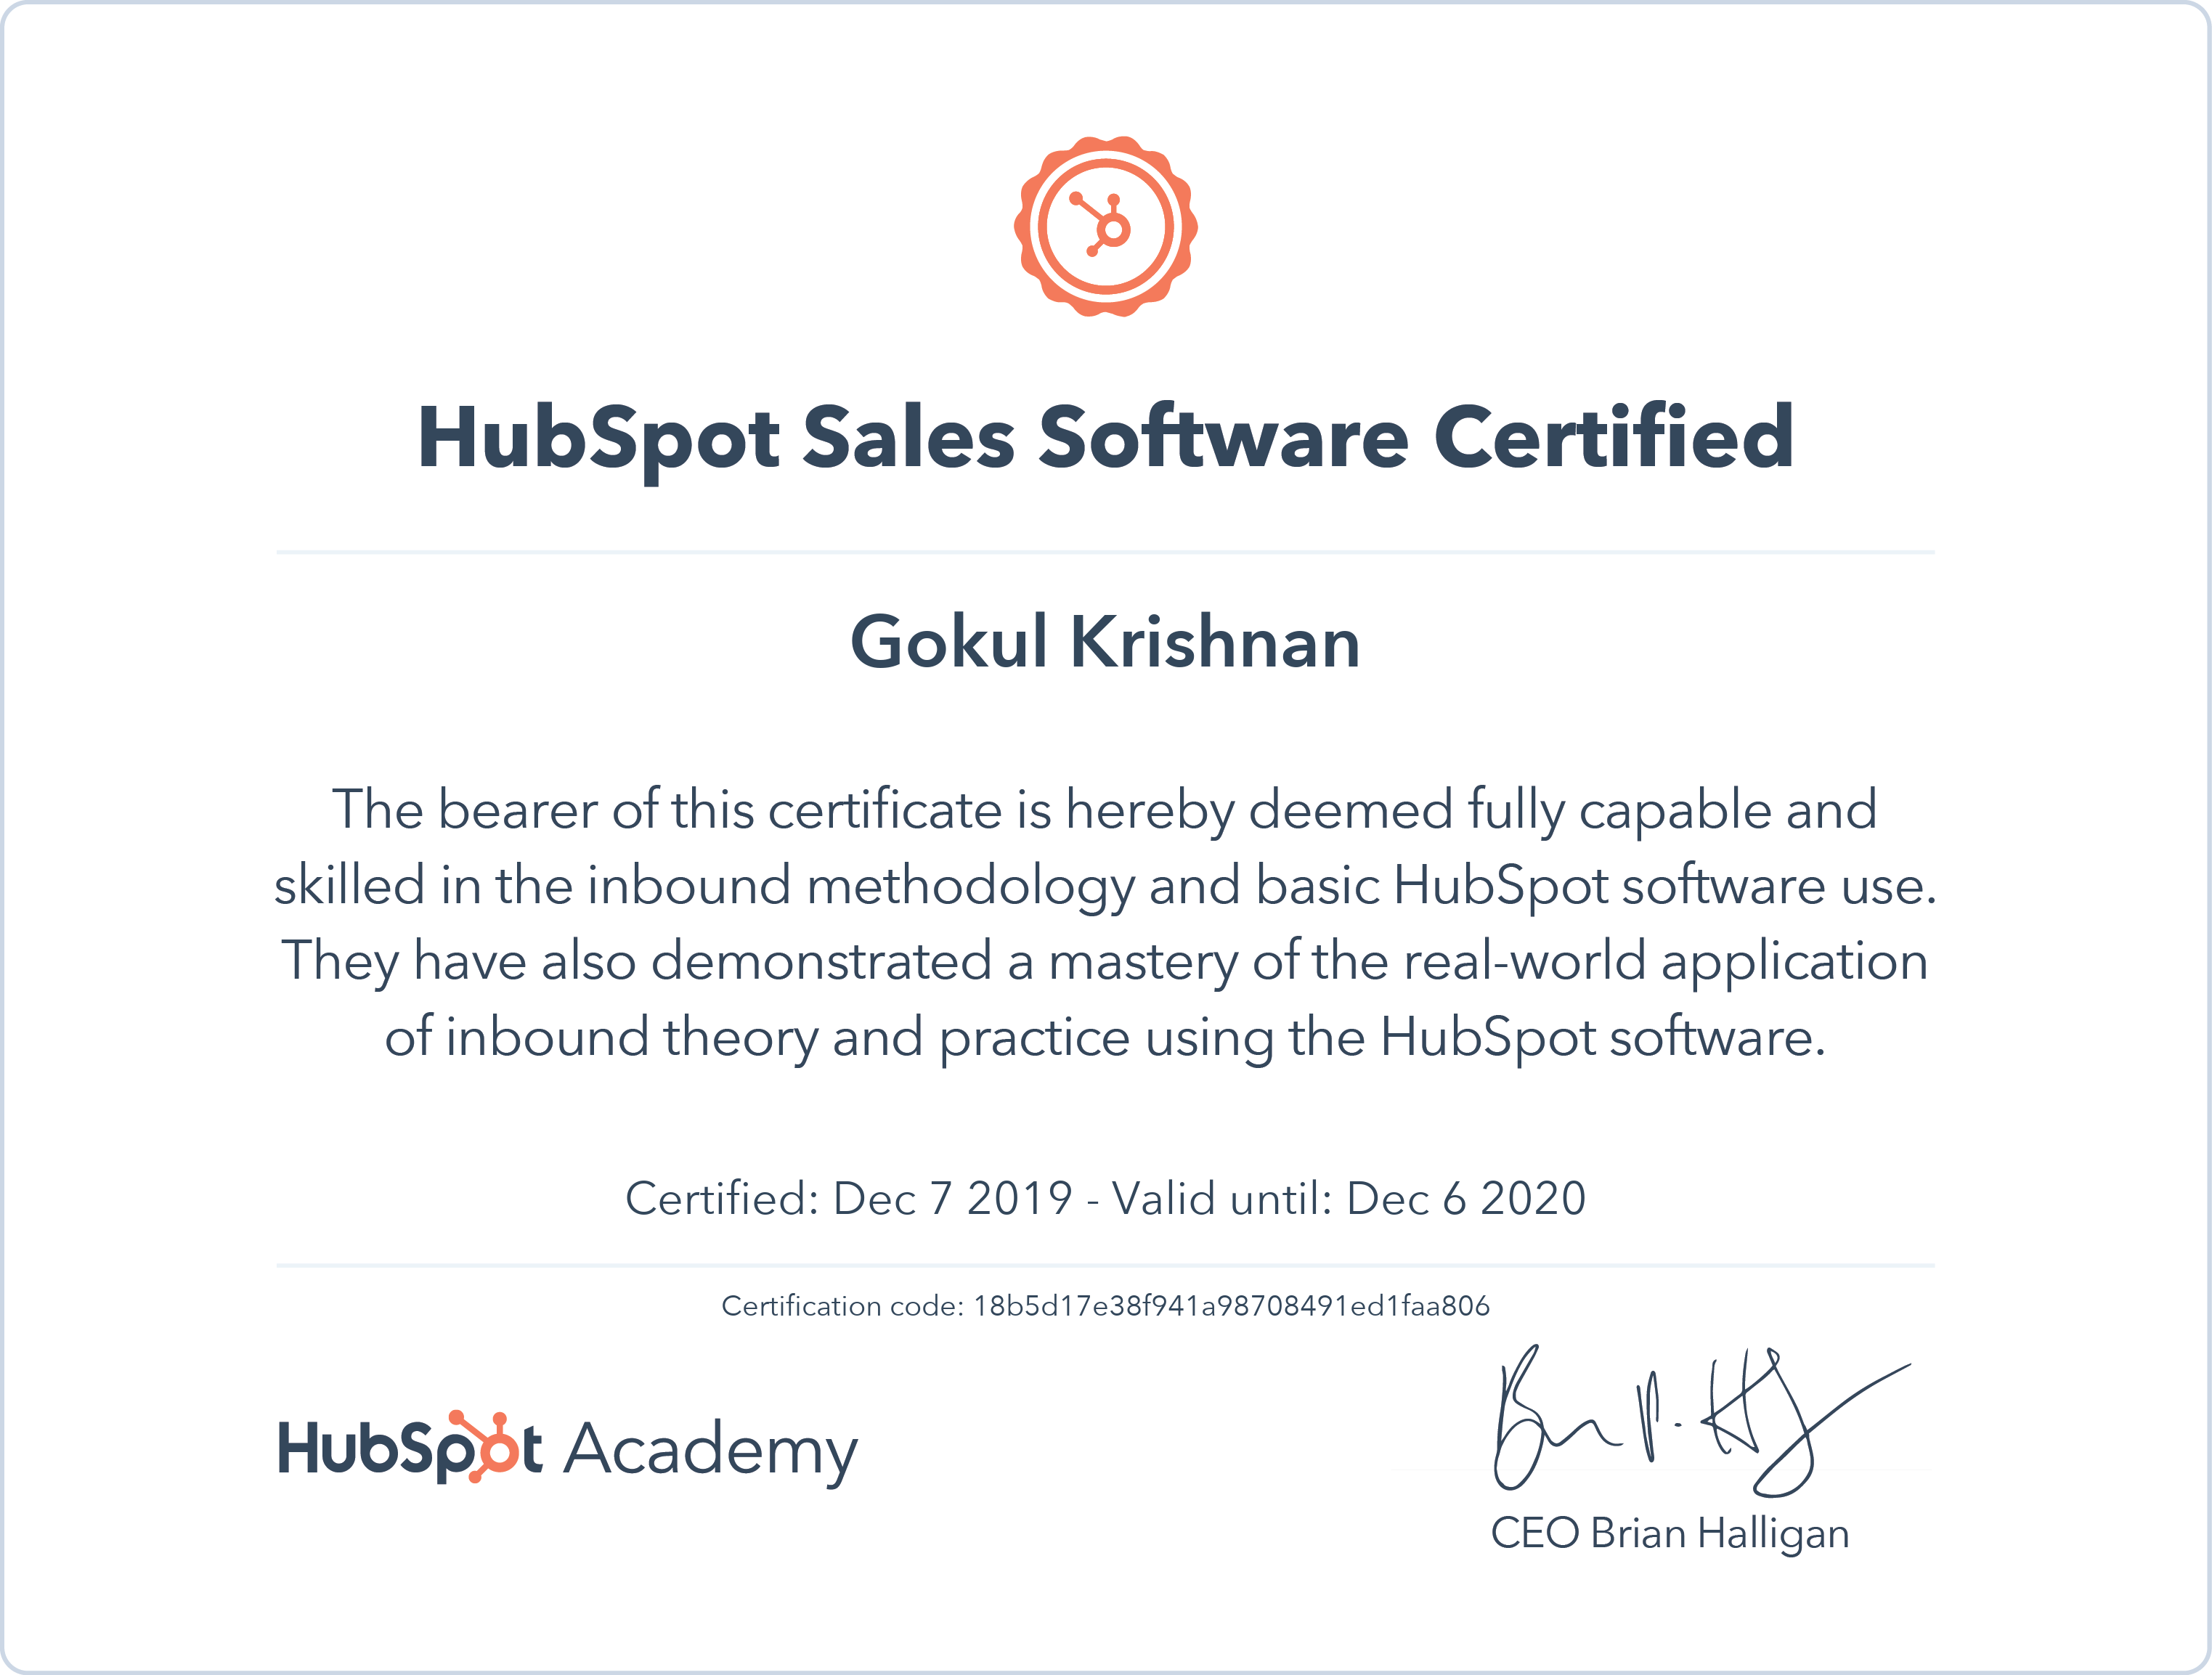 Gokul - HubSpot Sales Software Certification